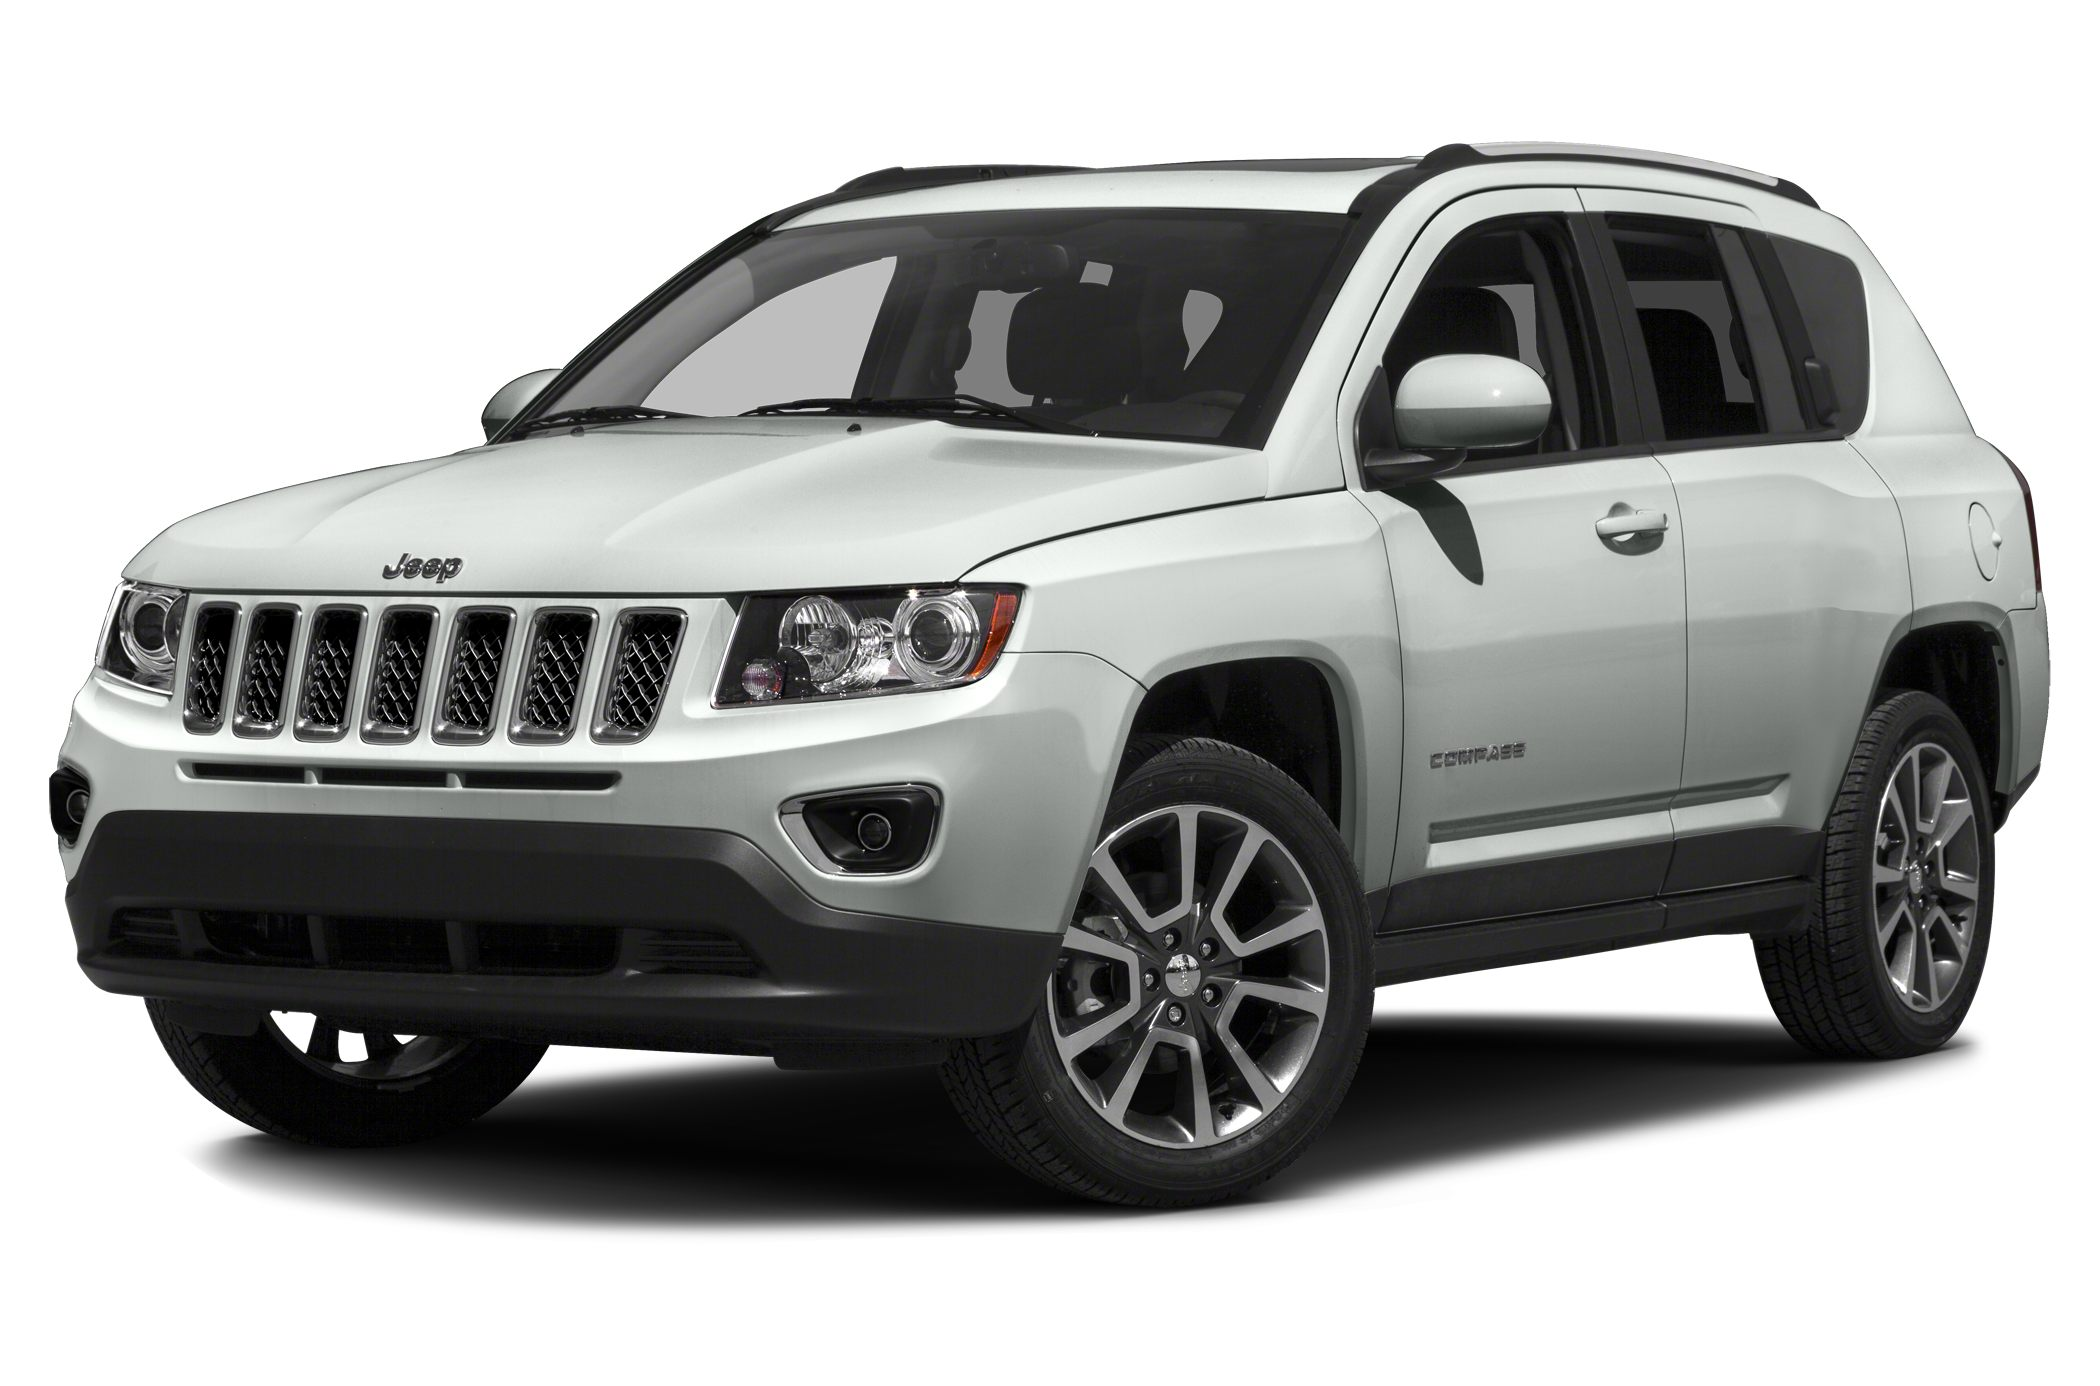 2014 Jeep Compass Sport This 2014 Jeep Compass FWD 4dr Sport is offered to you for sale by Lake Ke